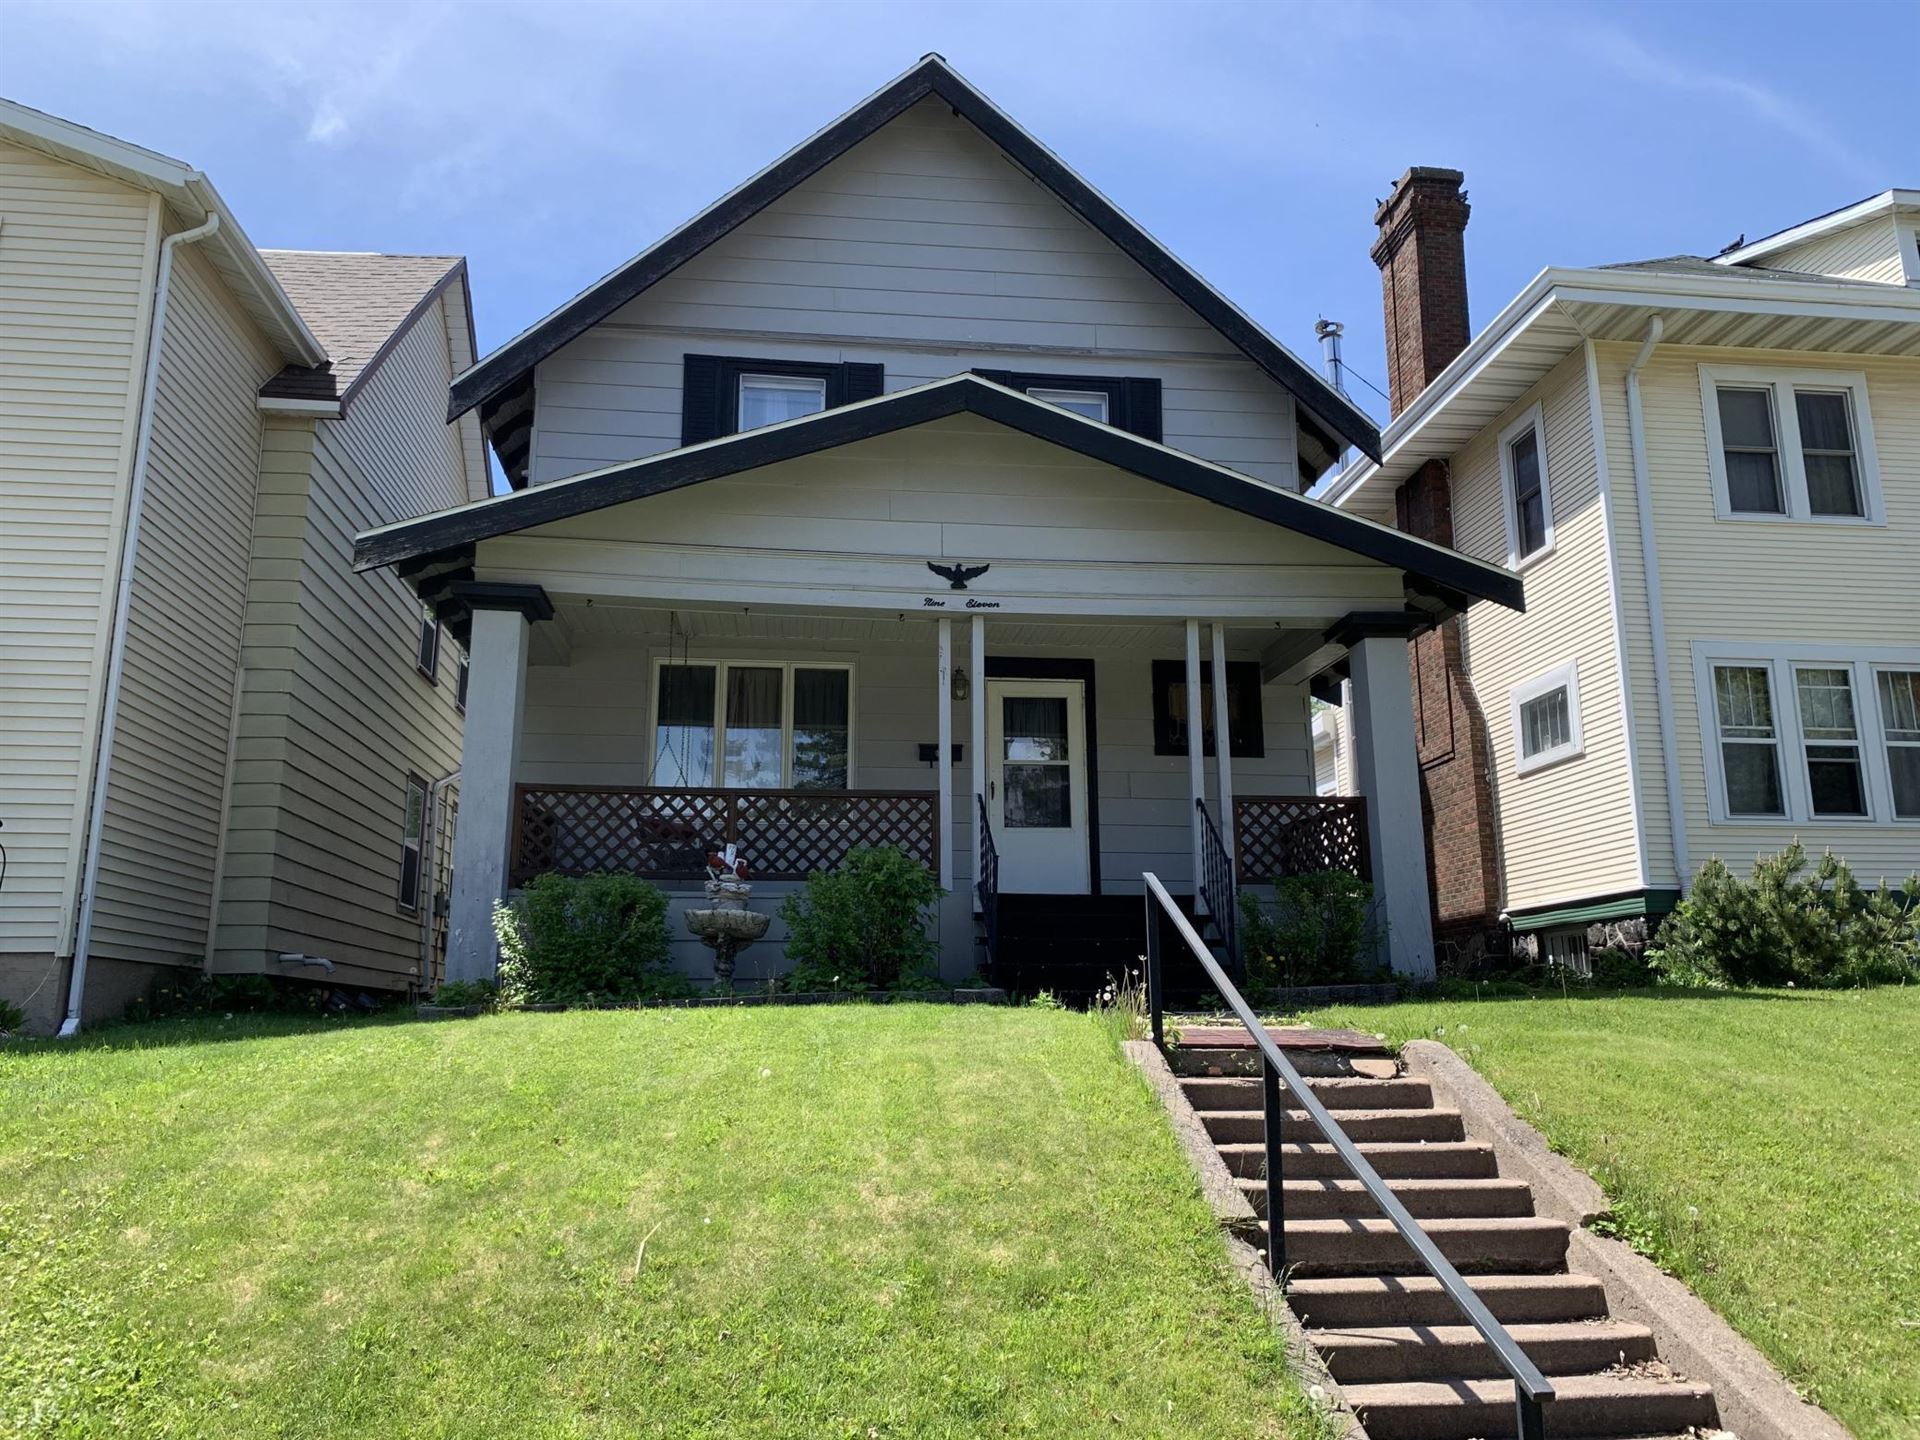 911 N Central Avenue, Duluth, MN 55807 - #: 5611330